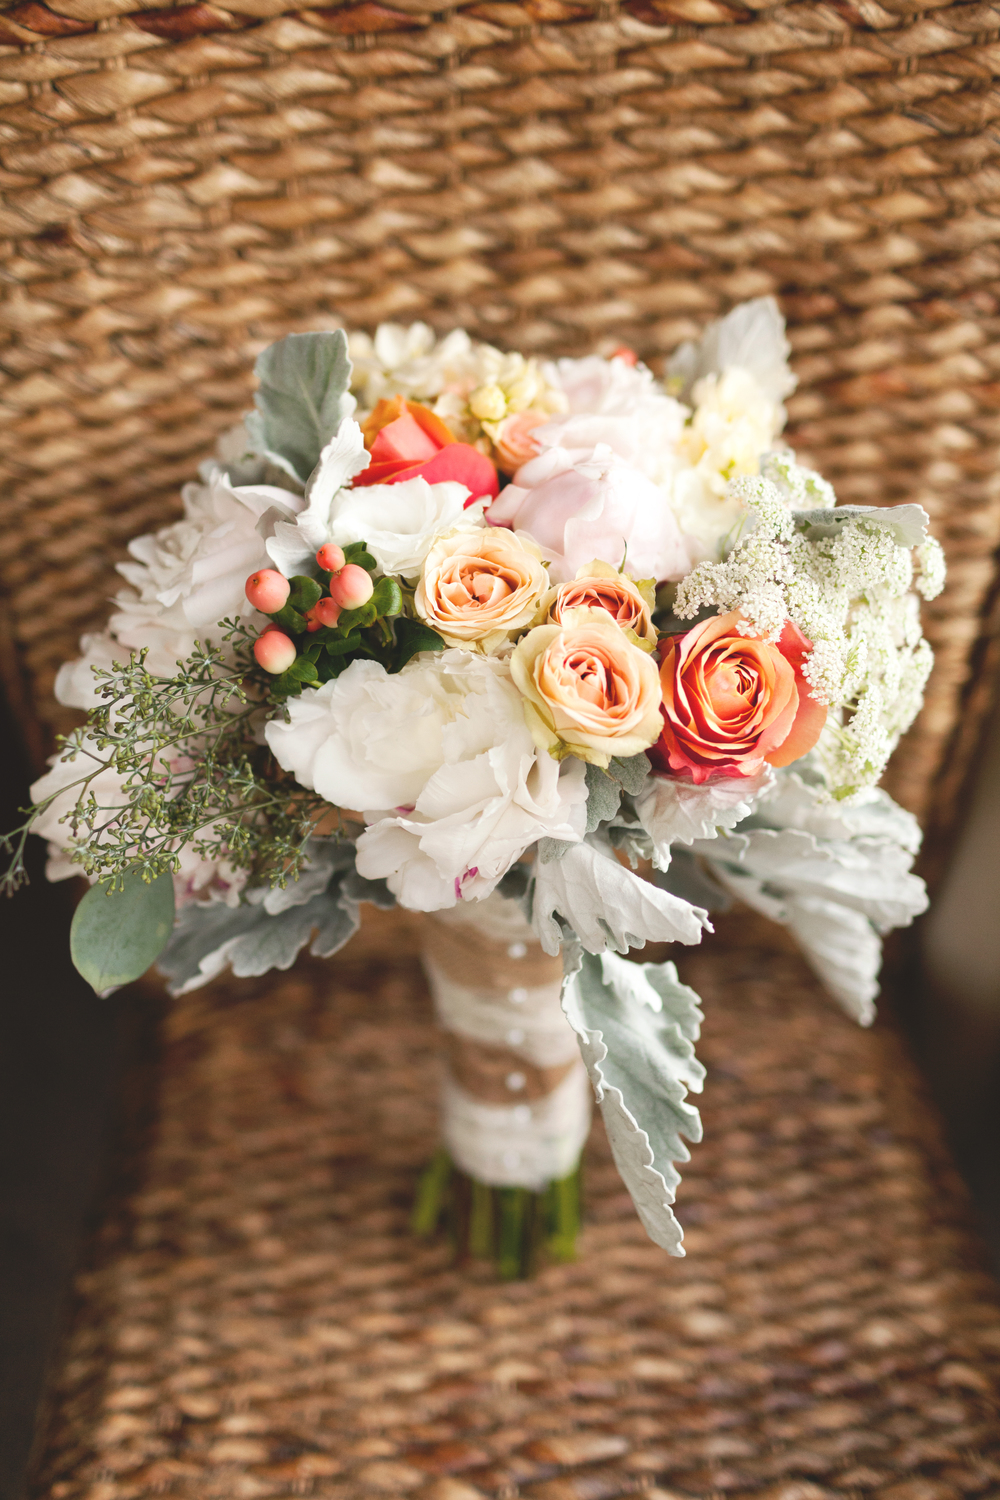 Soft Pastel Bouquet (Photo Credit: Sonlight Imaging)